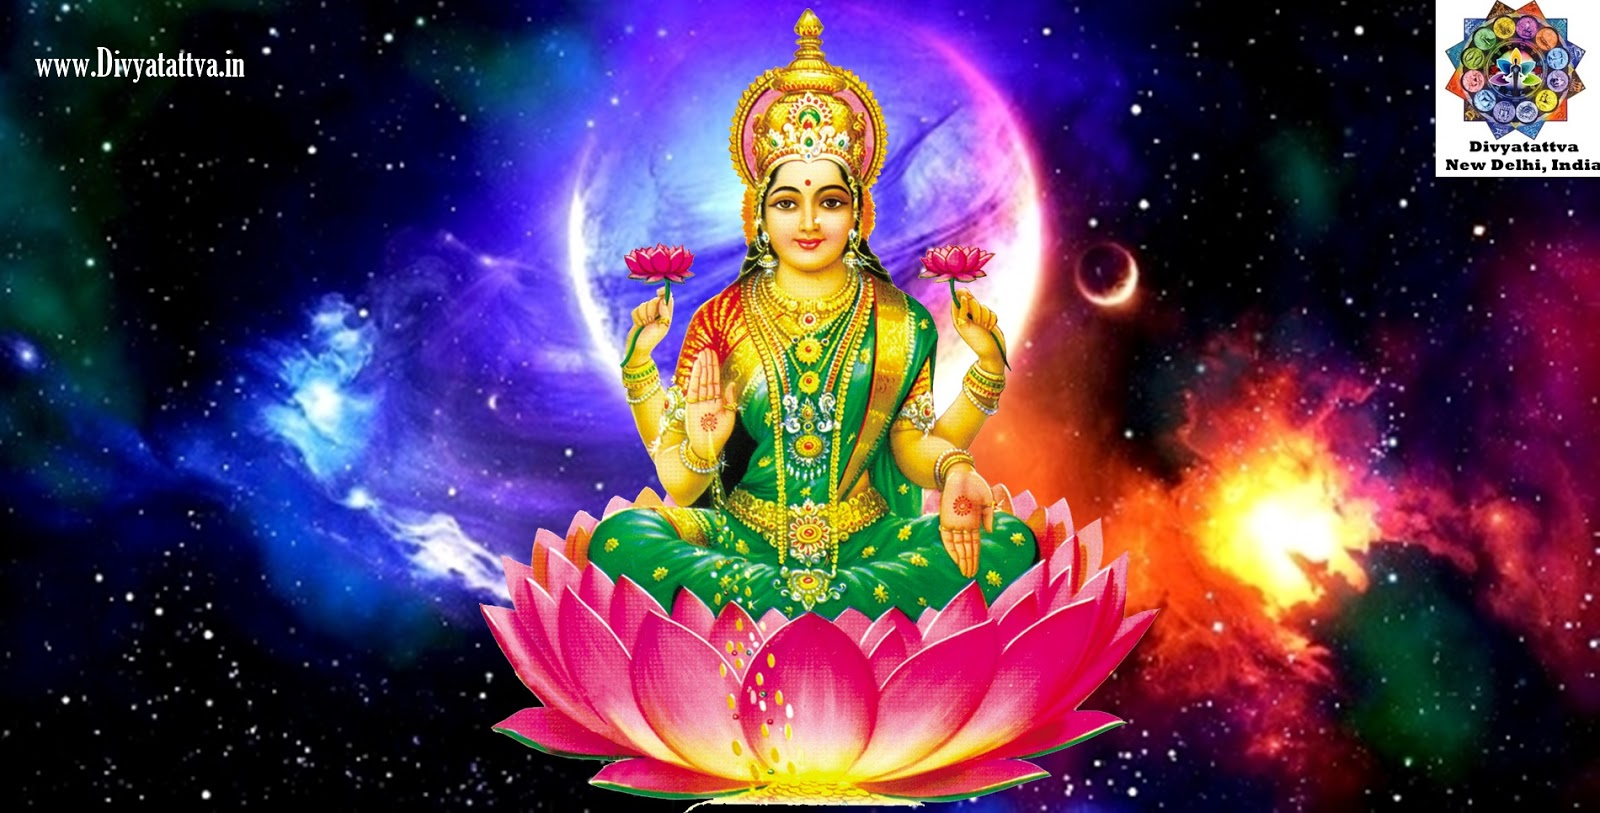 Divyatattva Astrology Free Horoscopes Psychic Tarot Yoga Tantra Occult Images Videos Hindu Goddess Lakshmi Wallpaper Hd Background Photos Wealth Deity Shakti Photos